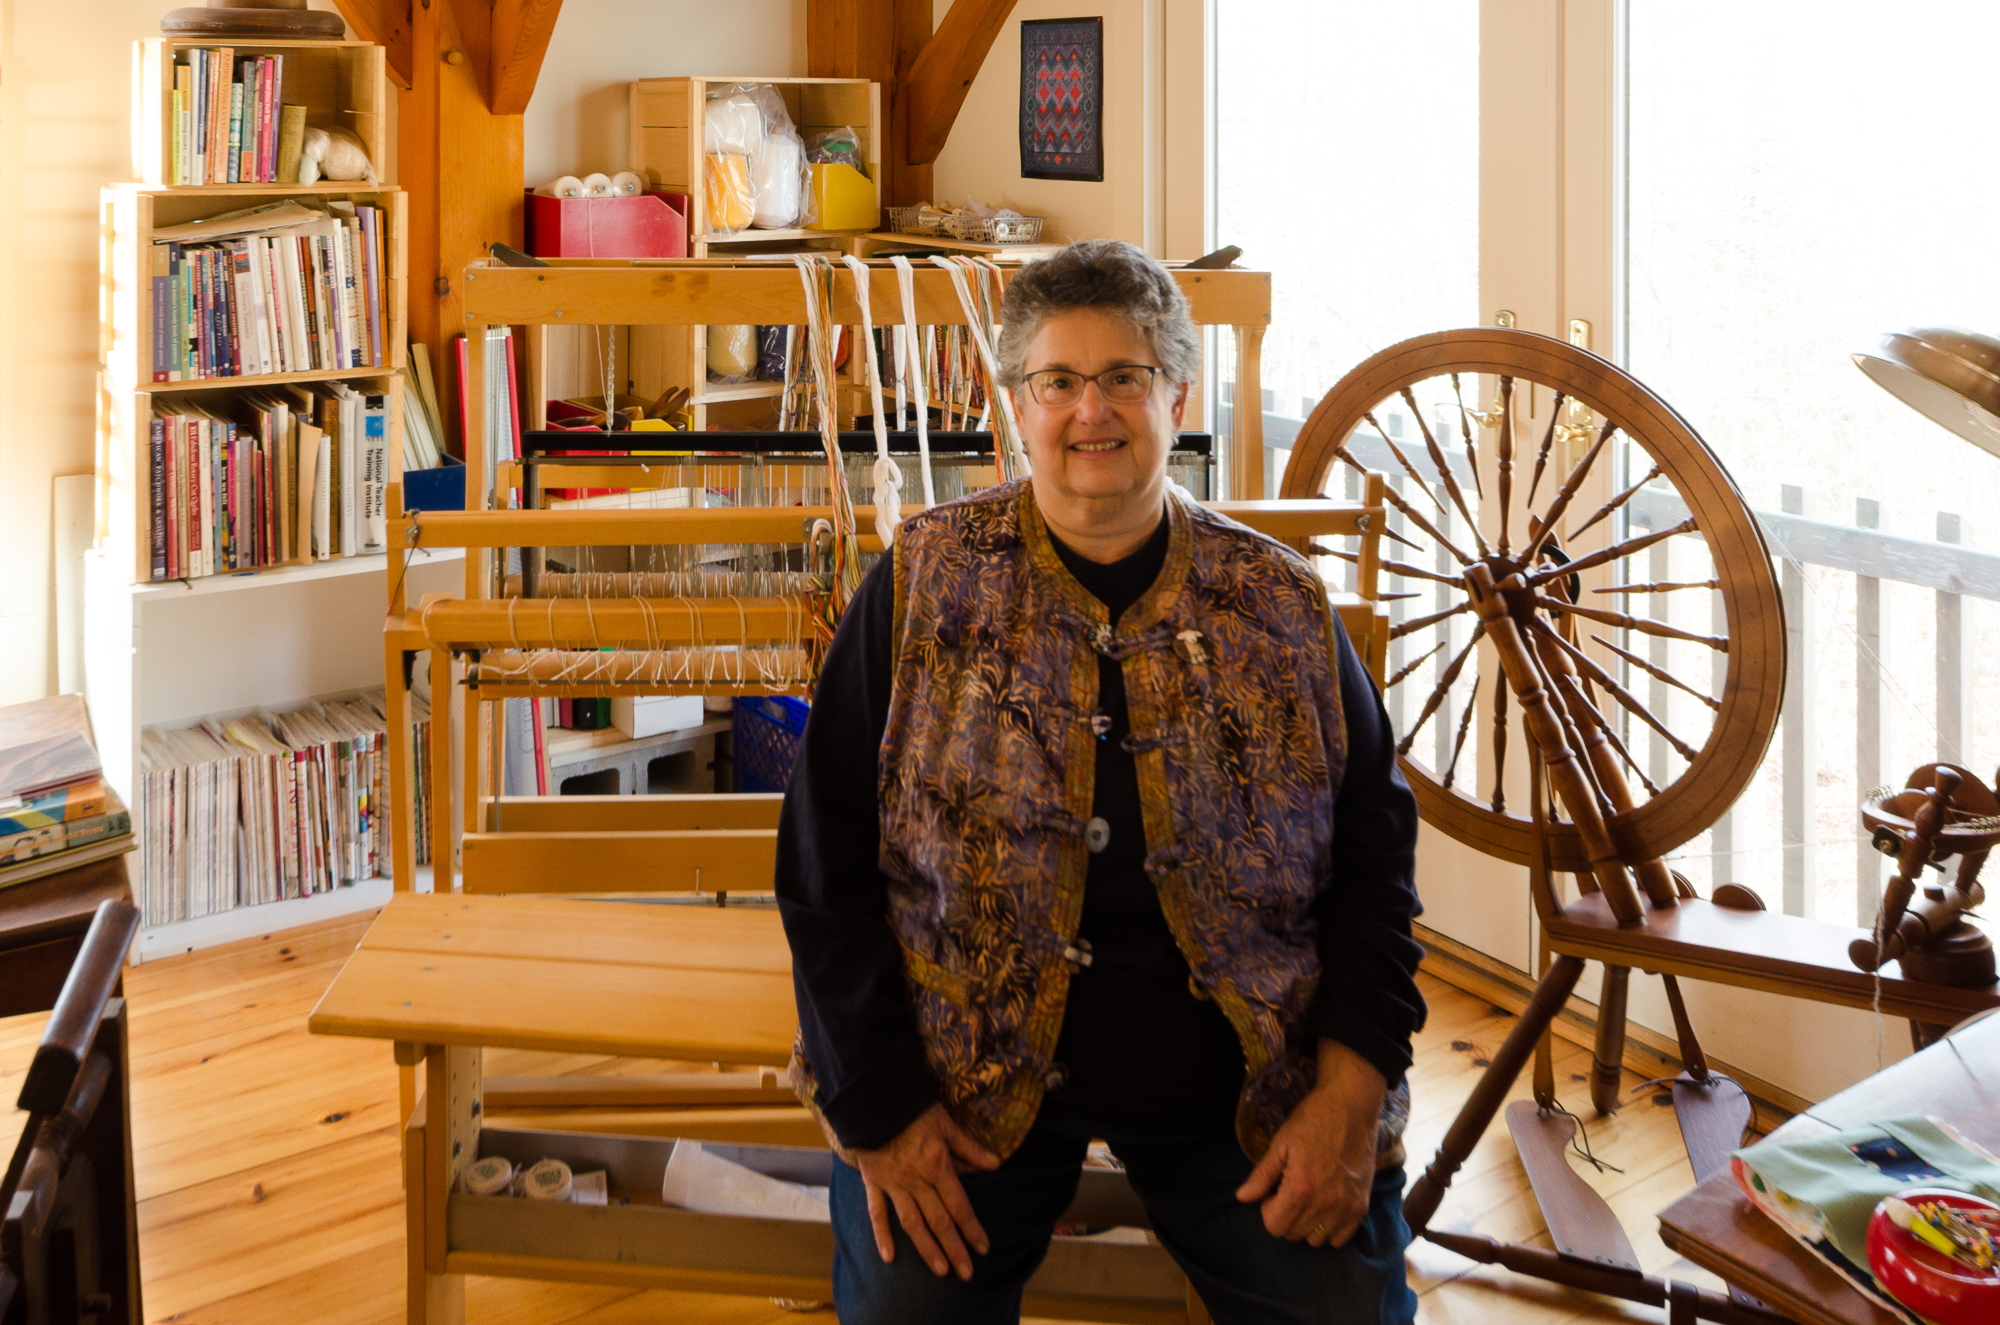 Nina Ruit seated in her spinning, weaving and sewing studio at Ruit Farm, Bristol. Nina is one of twenty destinations included in our Fiber Art Mini Tour: Midcoast Maine.